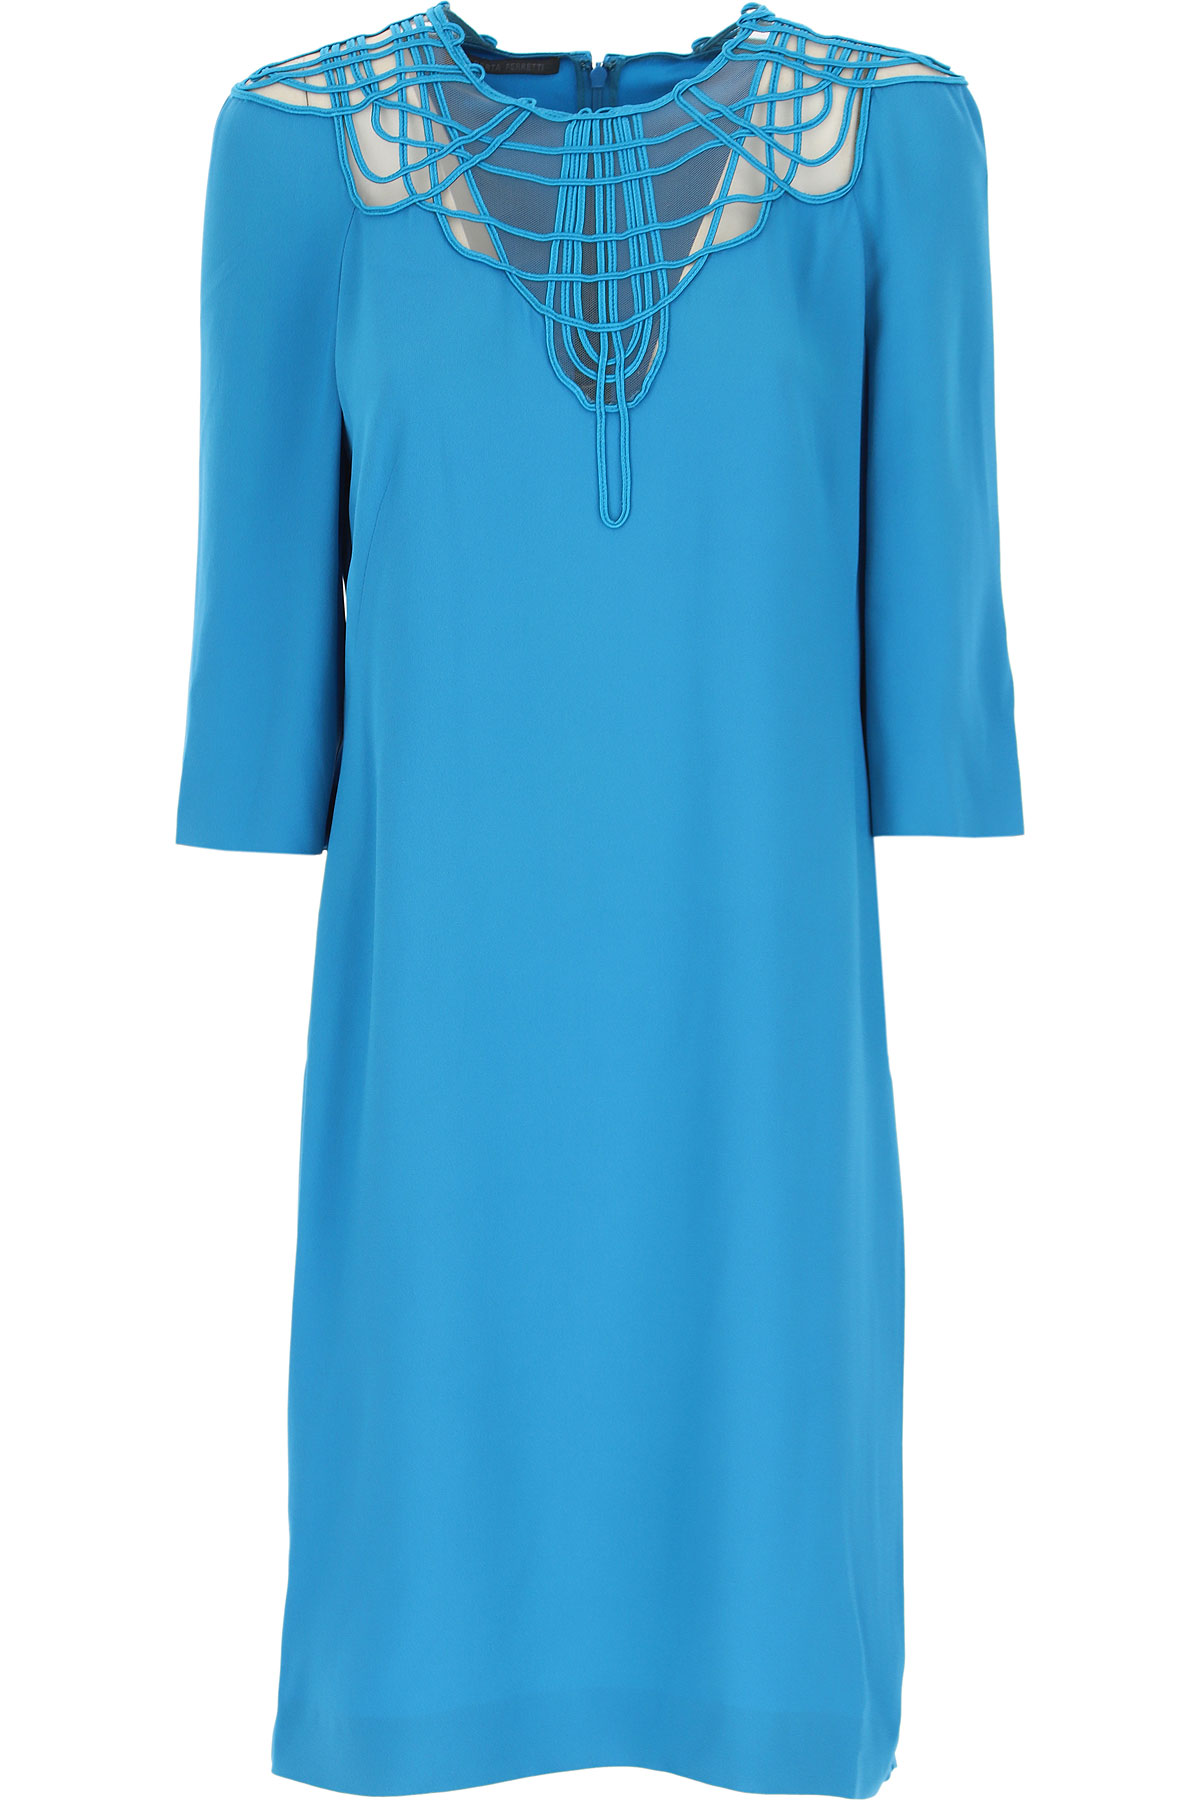 Alberta Ferretti Dress for Women, Evening Cocktail Party On Sale, Bluette, acetate, 2019, 6 8